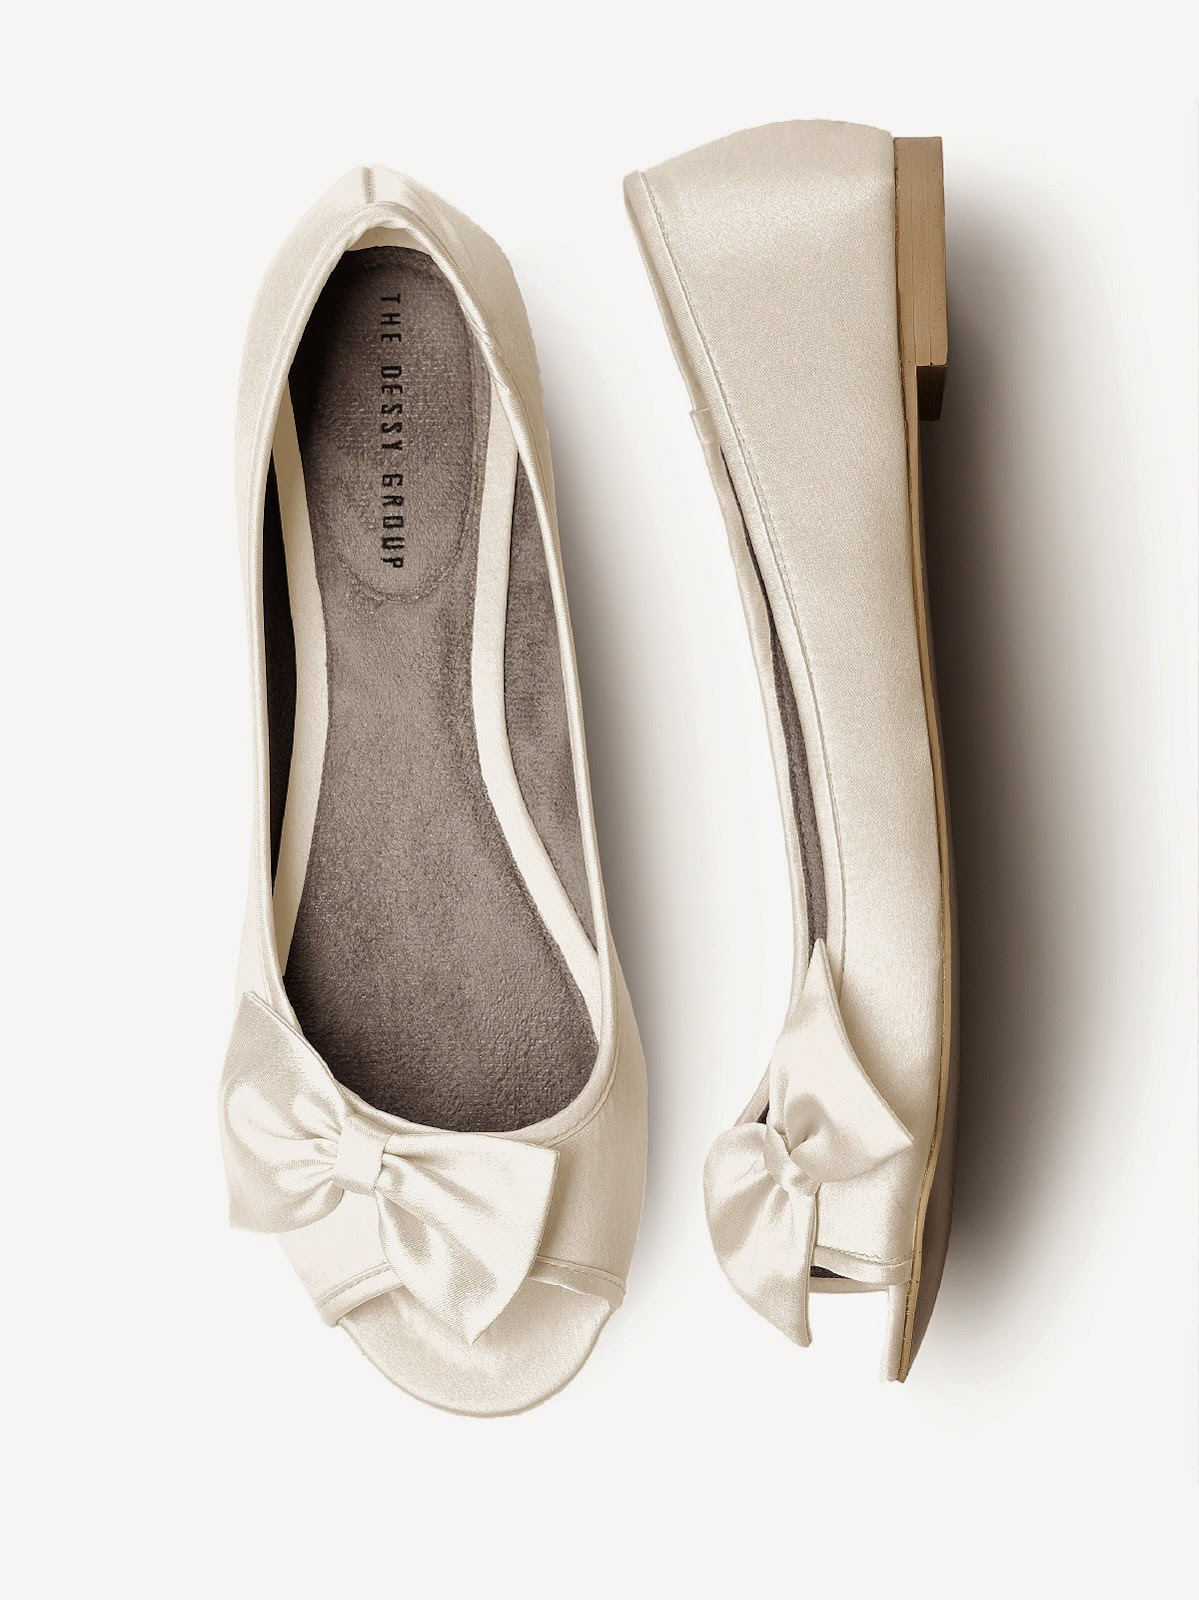 ee2e064ae12 Flat Bridal Shoes For Taller Brides